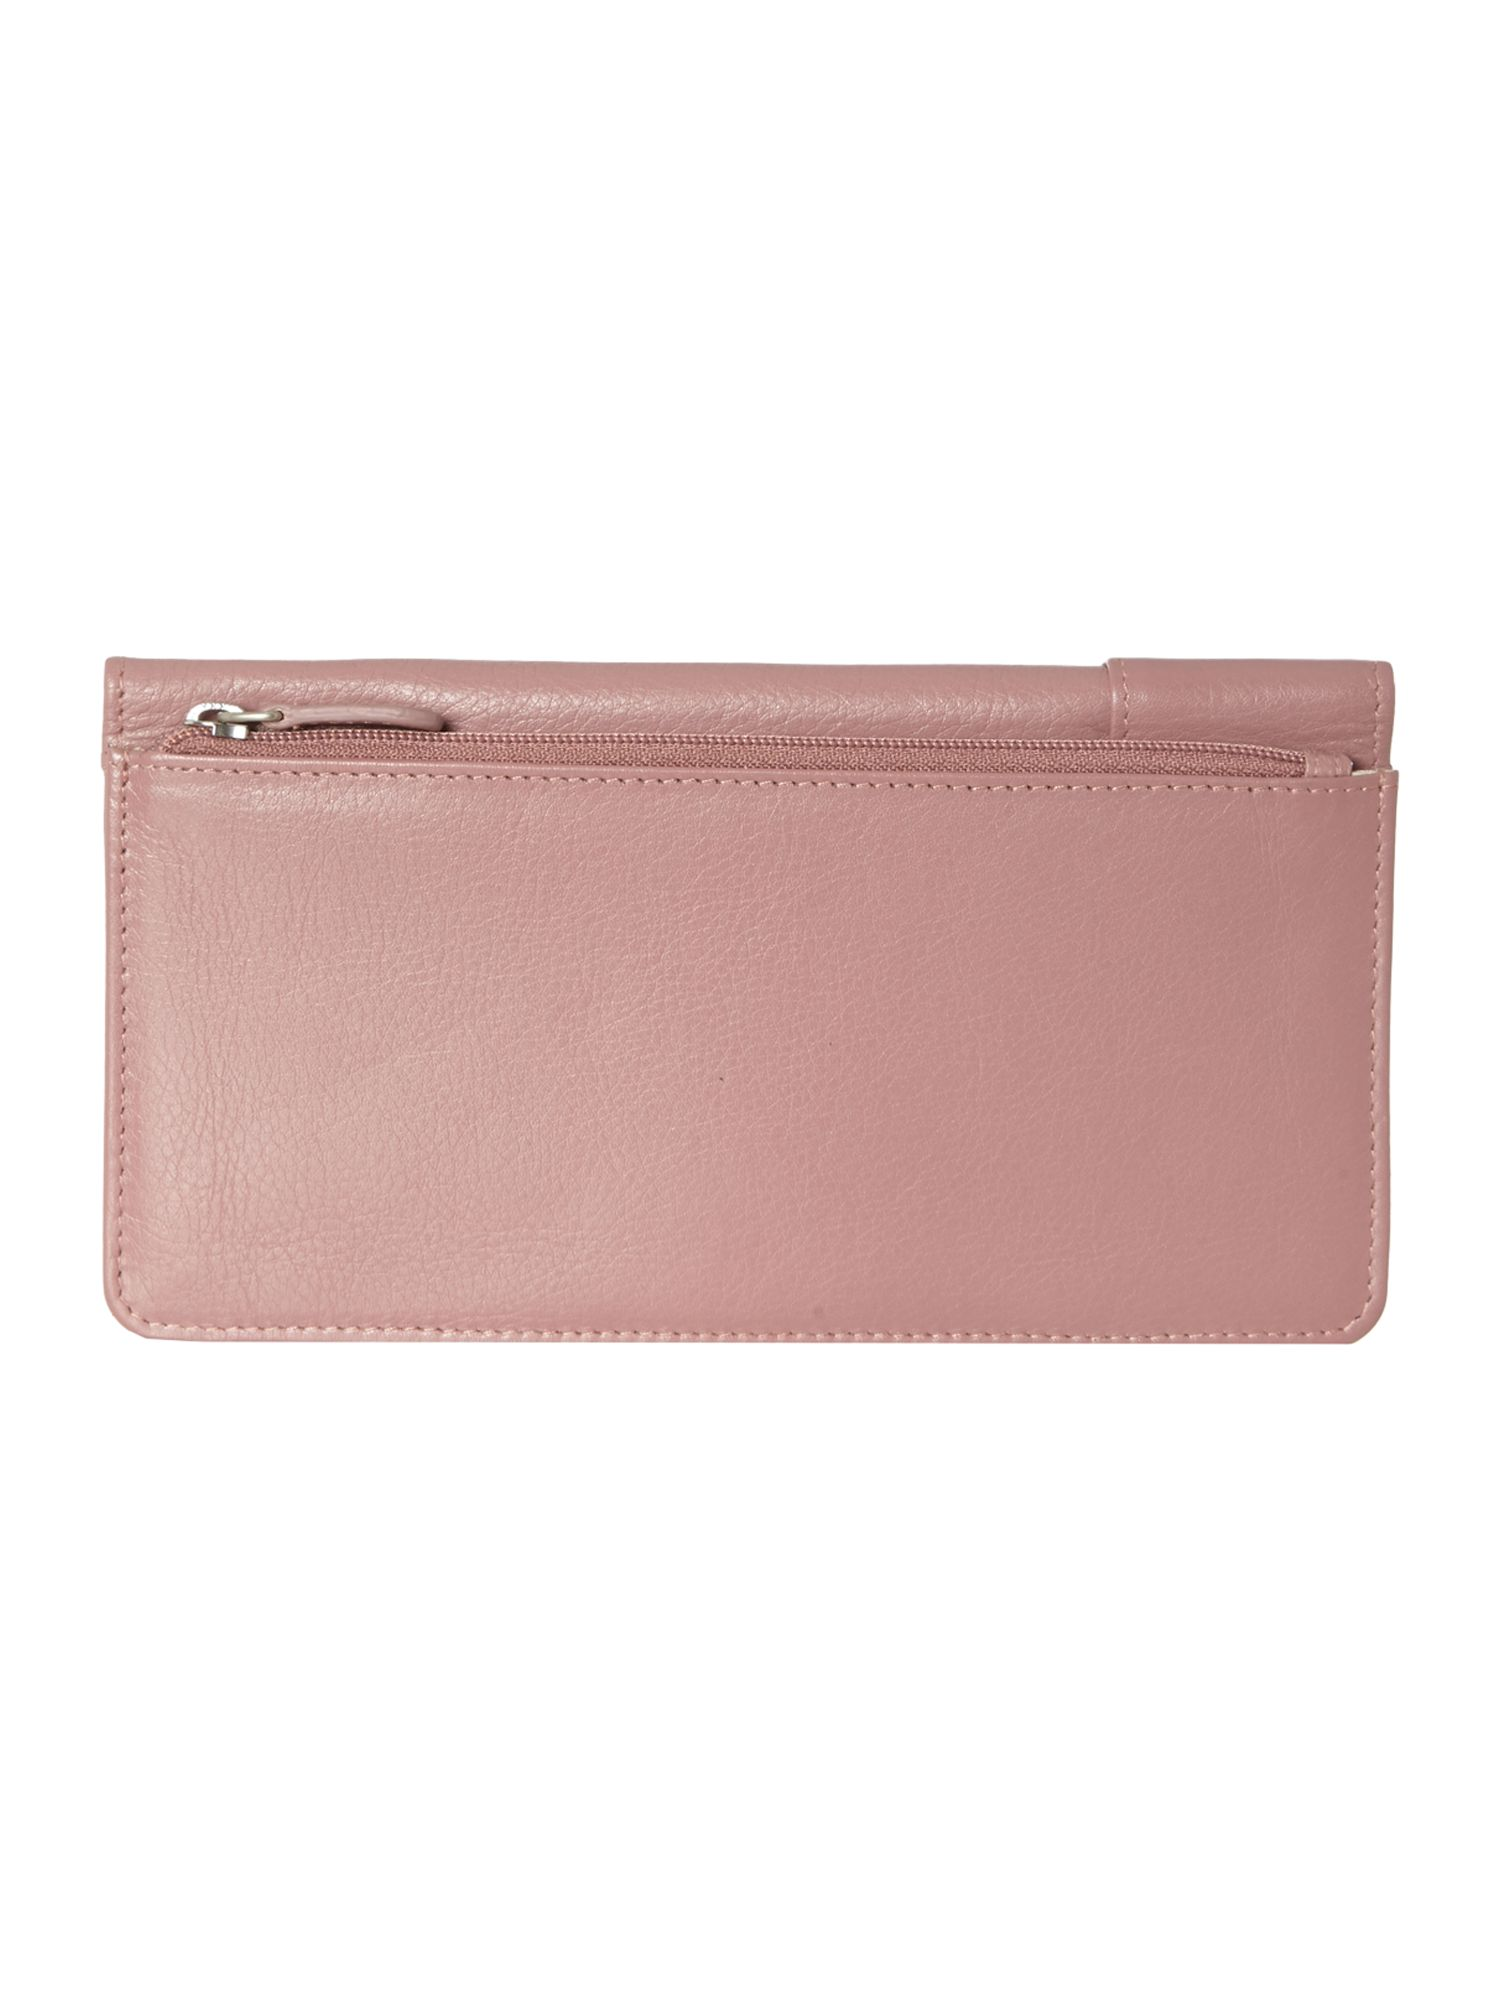 Pocket pink large flapover purse